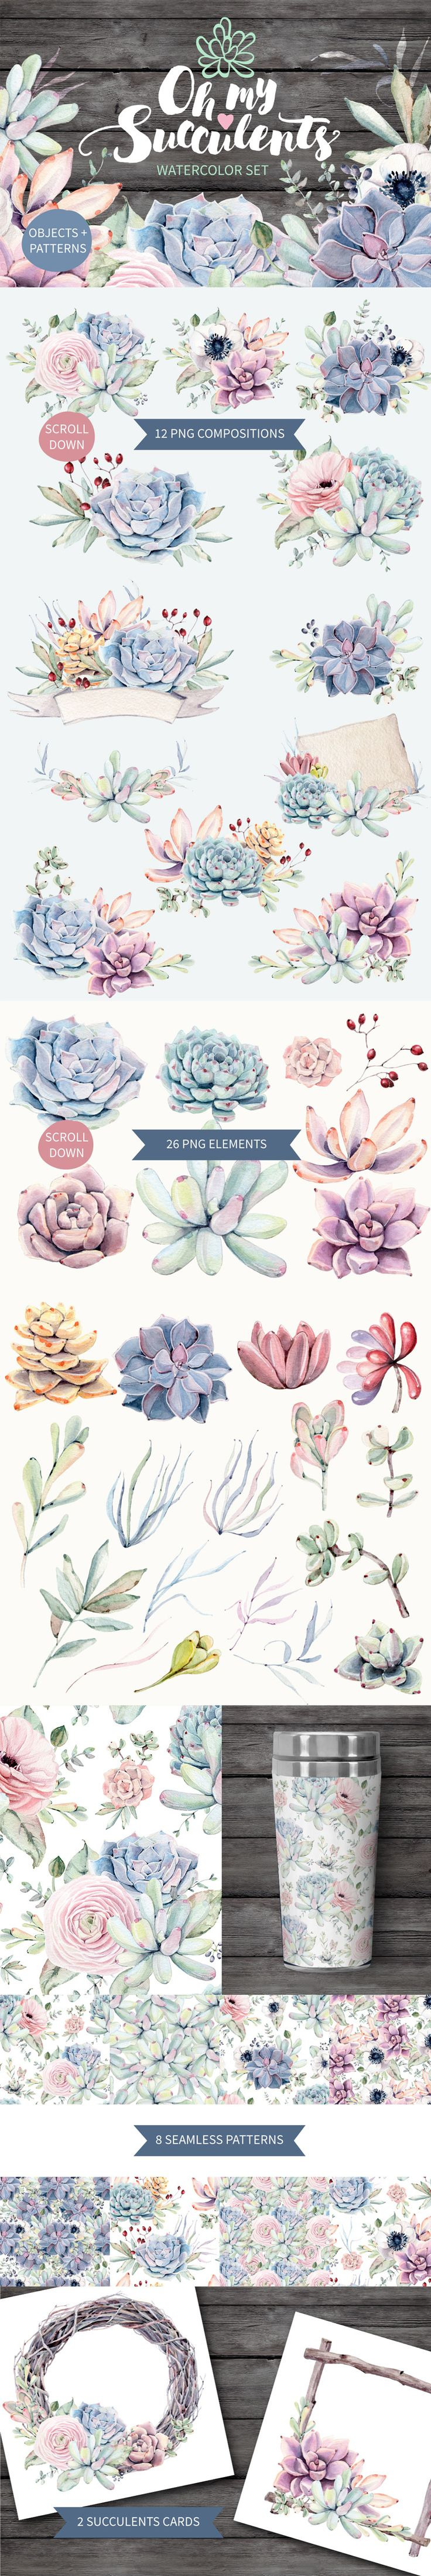 Cactus Clipart on Pinterest. 100+ inspiring ideas to discover and ...